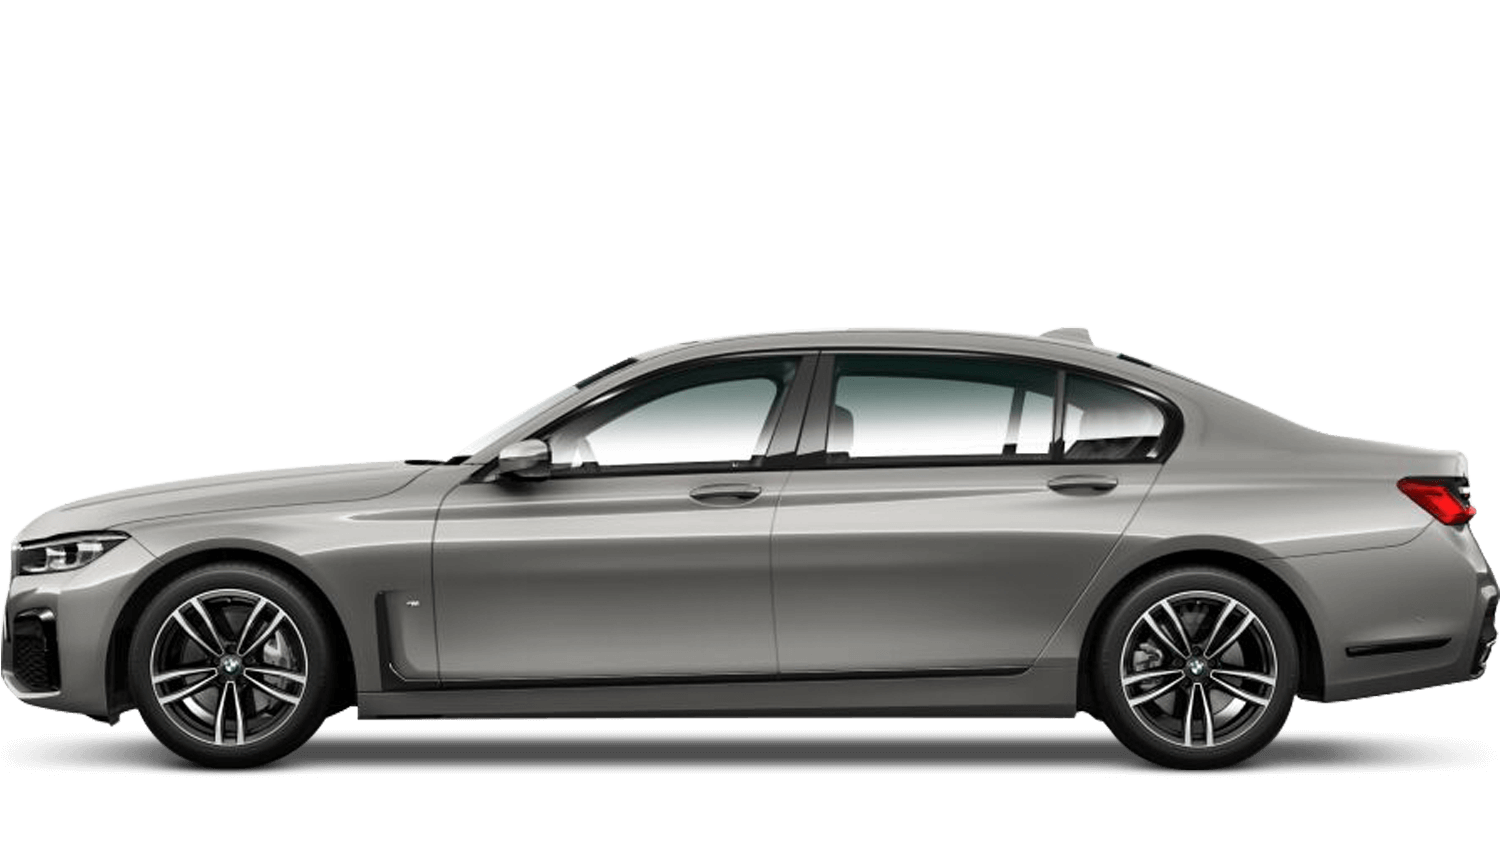 BMW 7 Series Saloon LWB